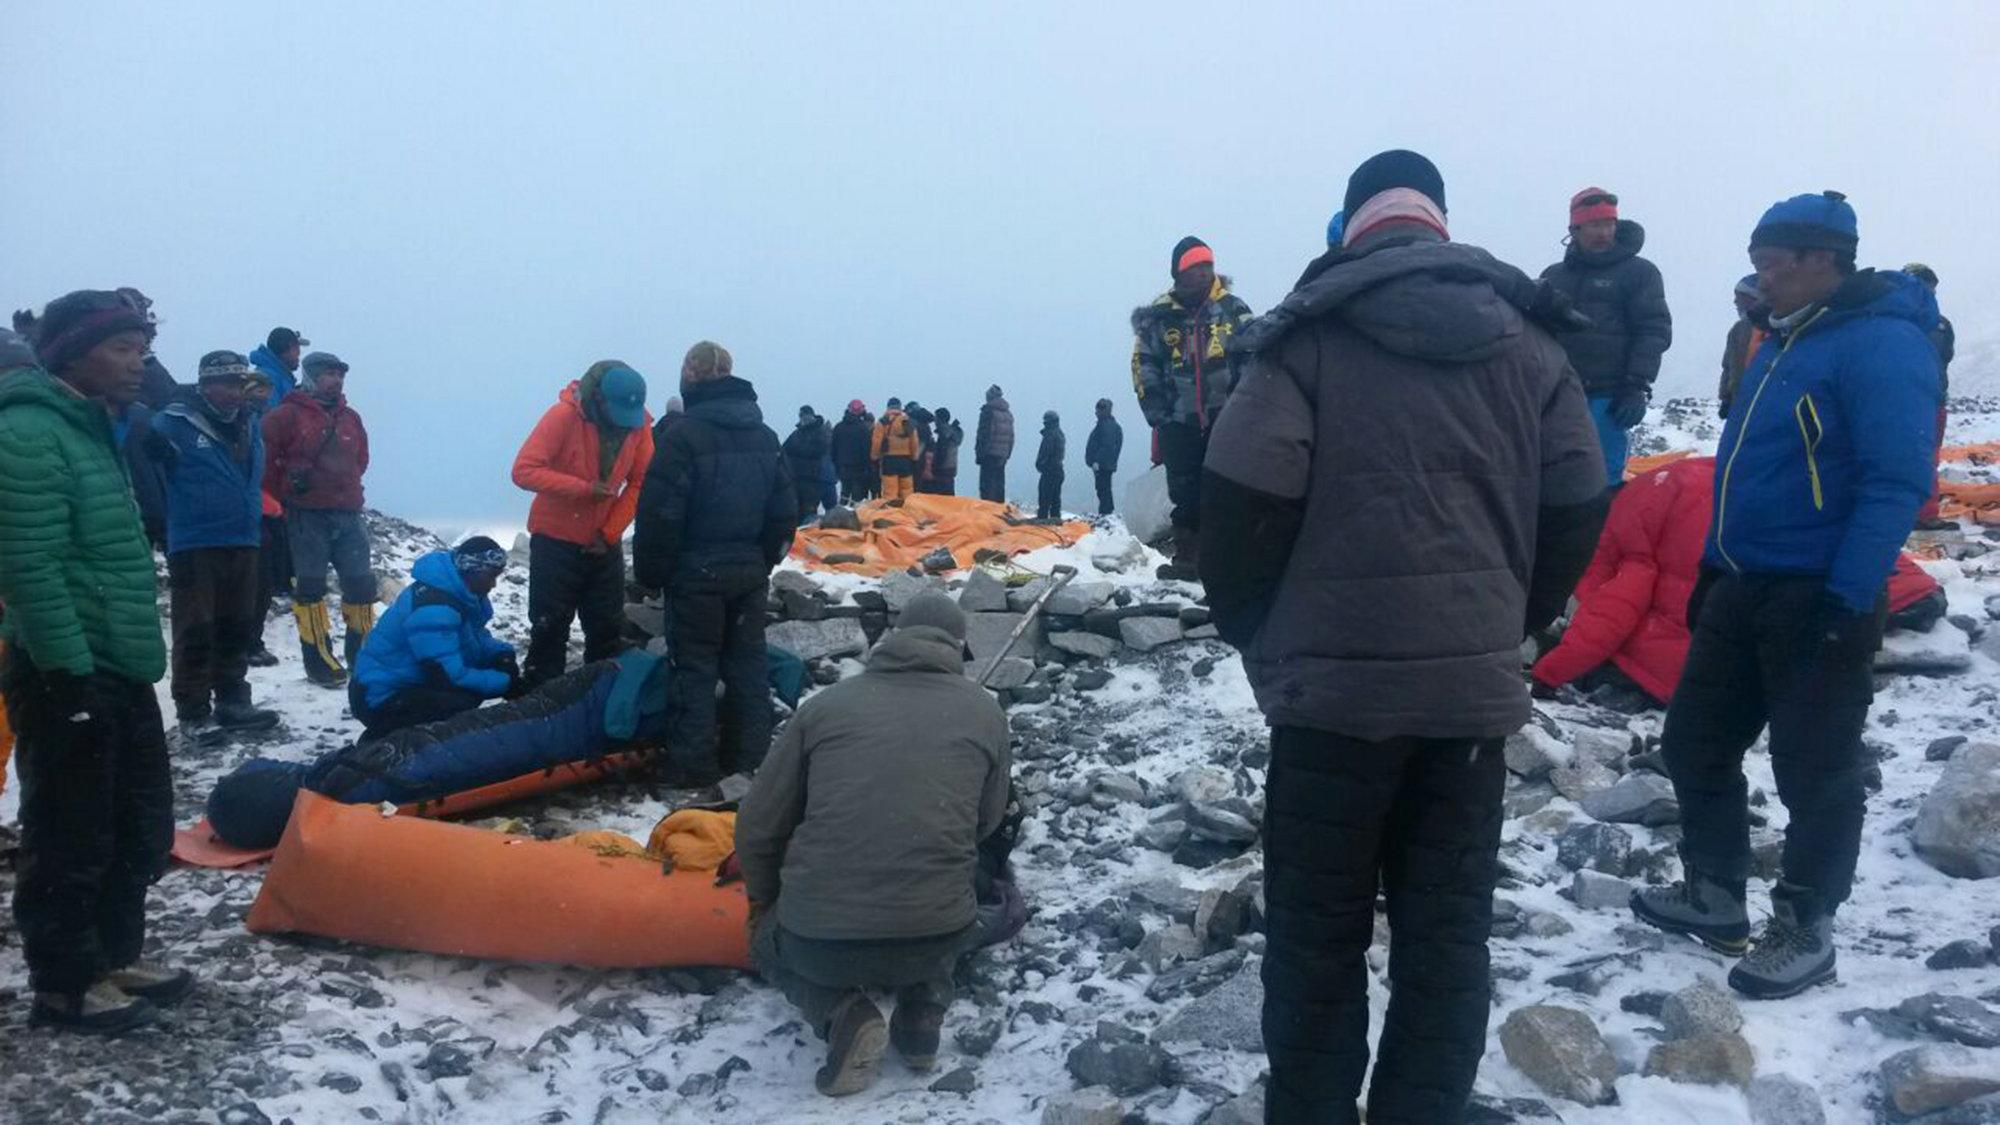 Rescuers struggle to reach remote Nepal areas as toll rises